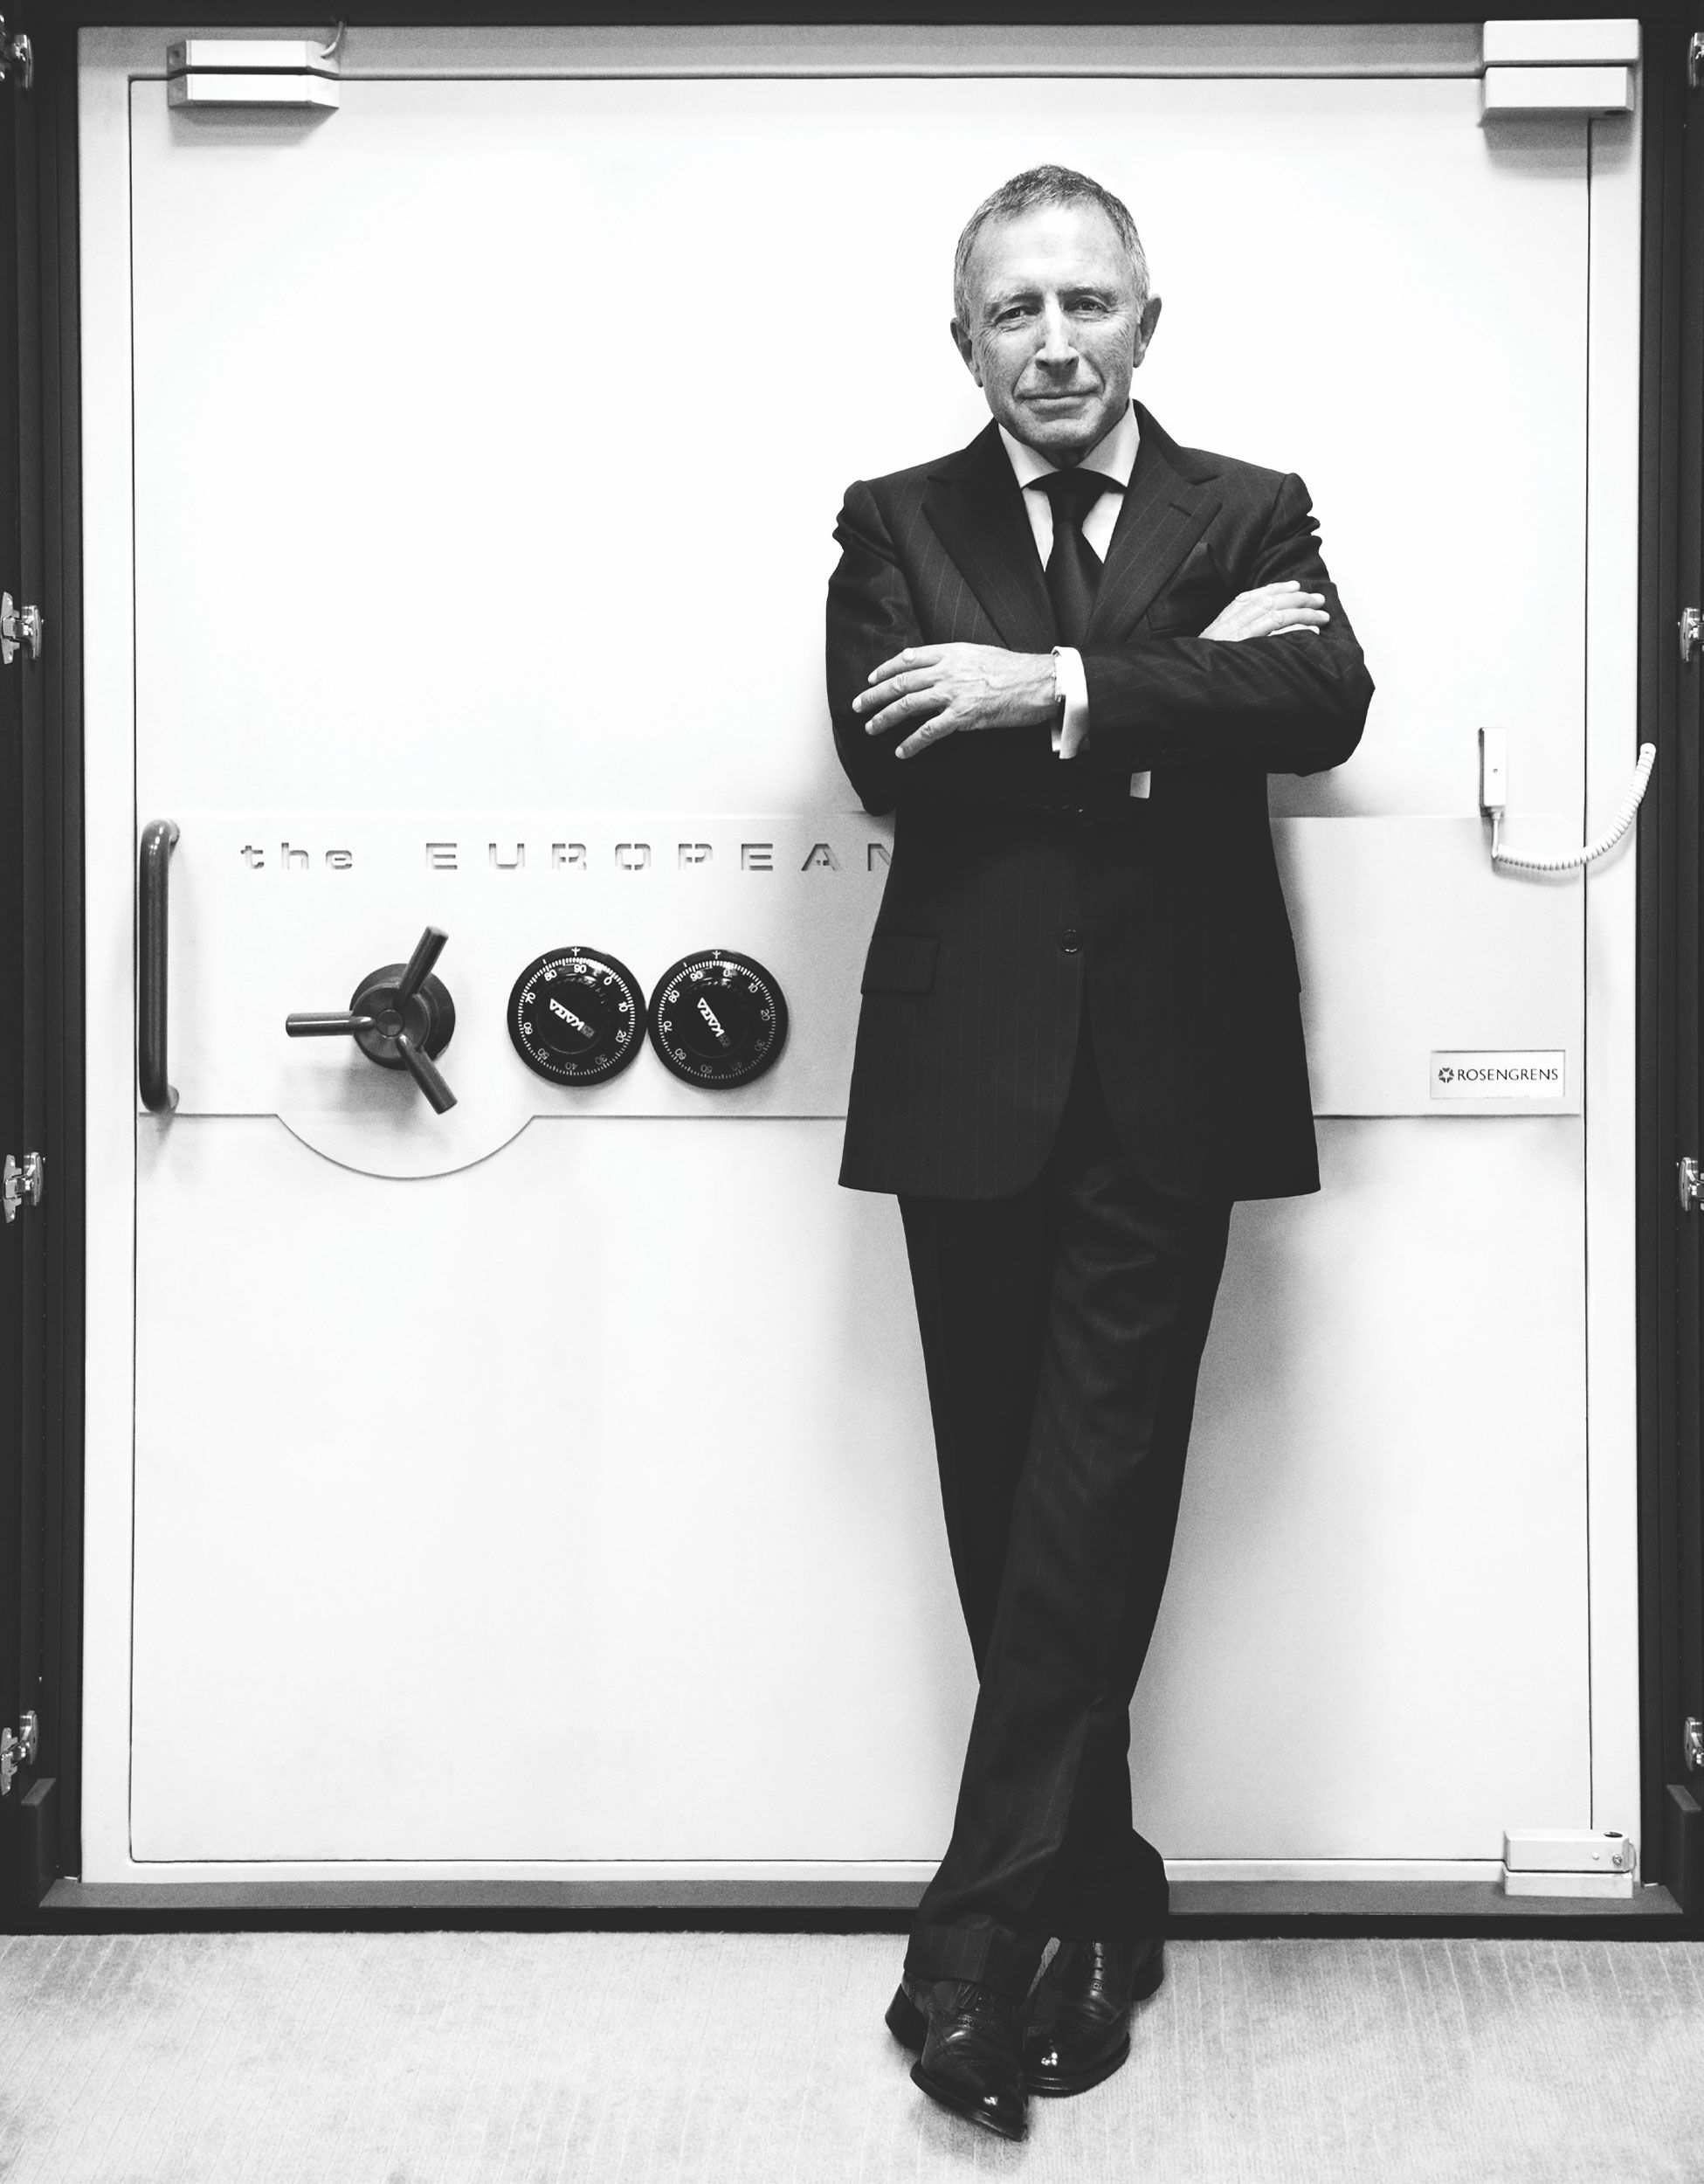 Mr Laurence Graff OBE stands in front of a vault